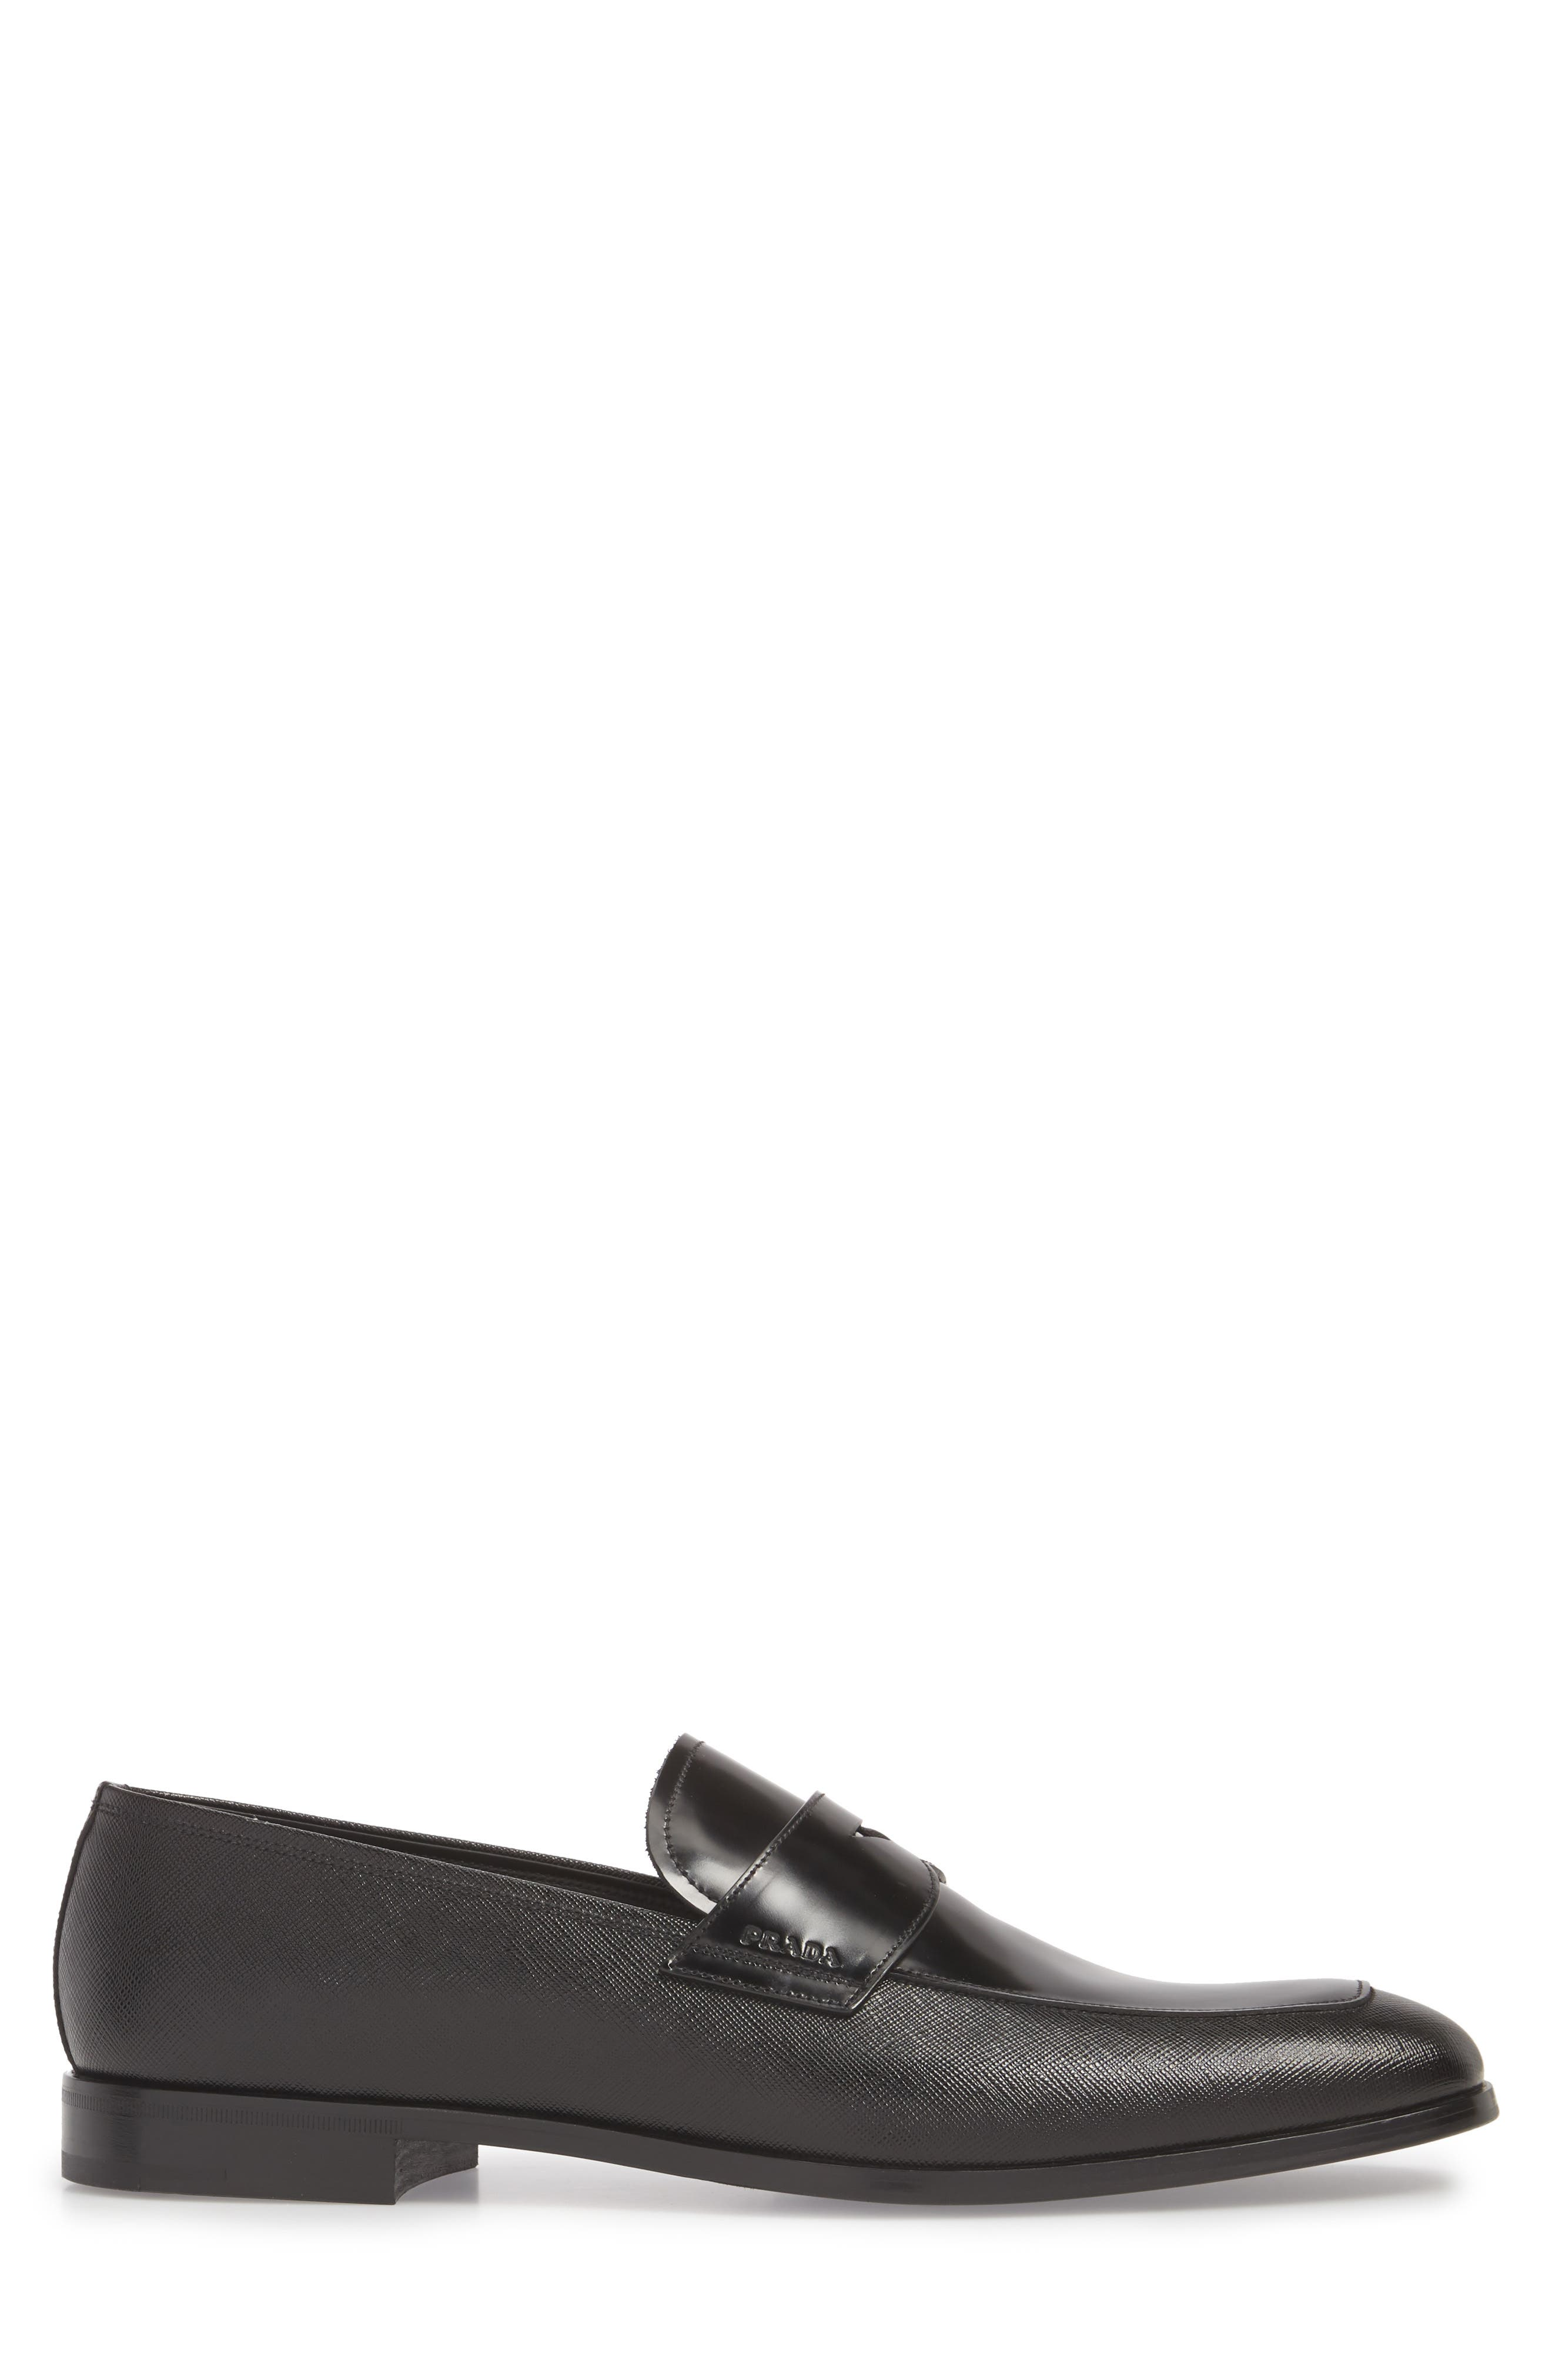 Saffiano Leather Penny Loafer,                             Alternate thumbnail 3, color,                             Nero